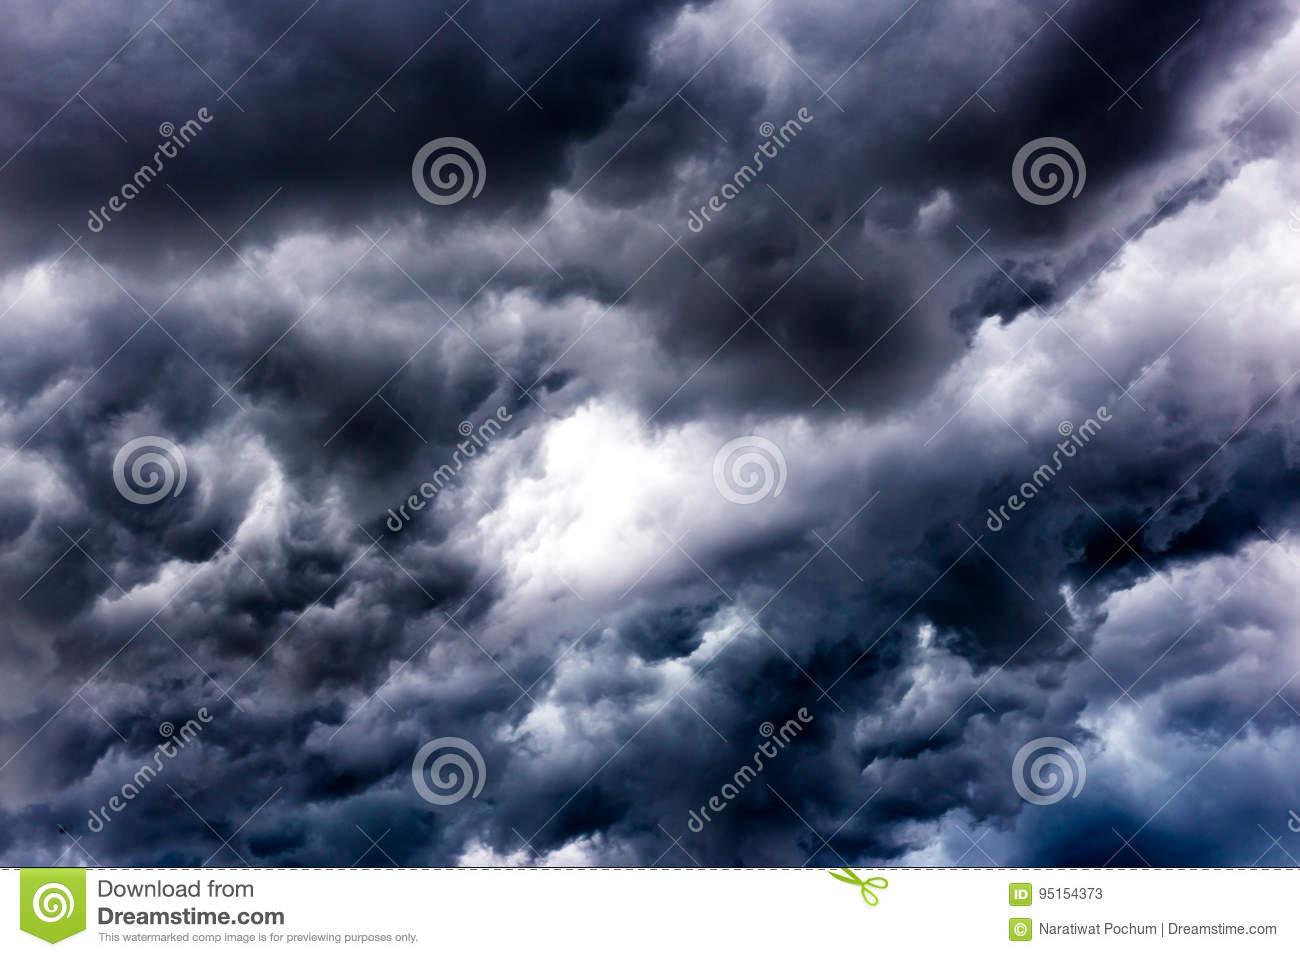 Black Clouds On Sky Dark Background Wallpaper Stock Image Image Of Hurricane Cloudy 95154373